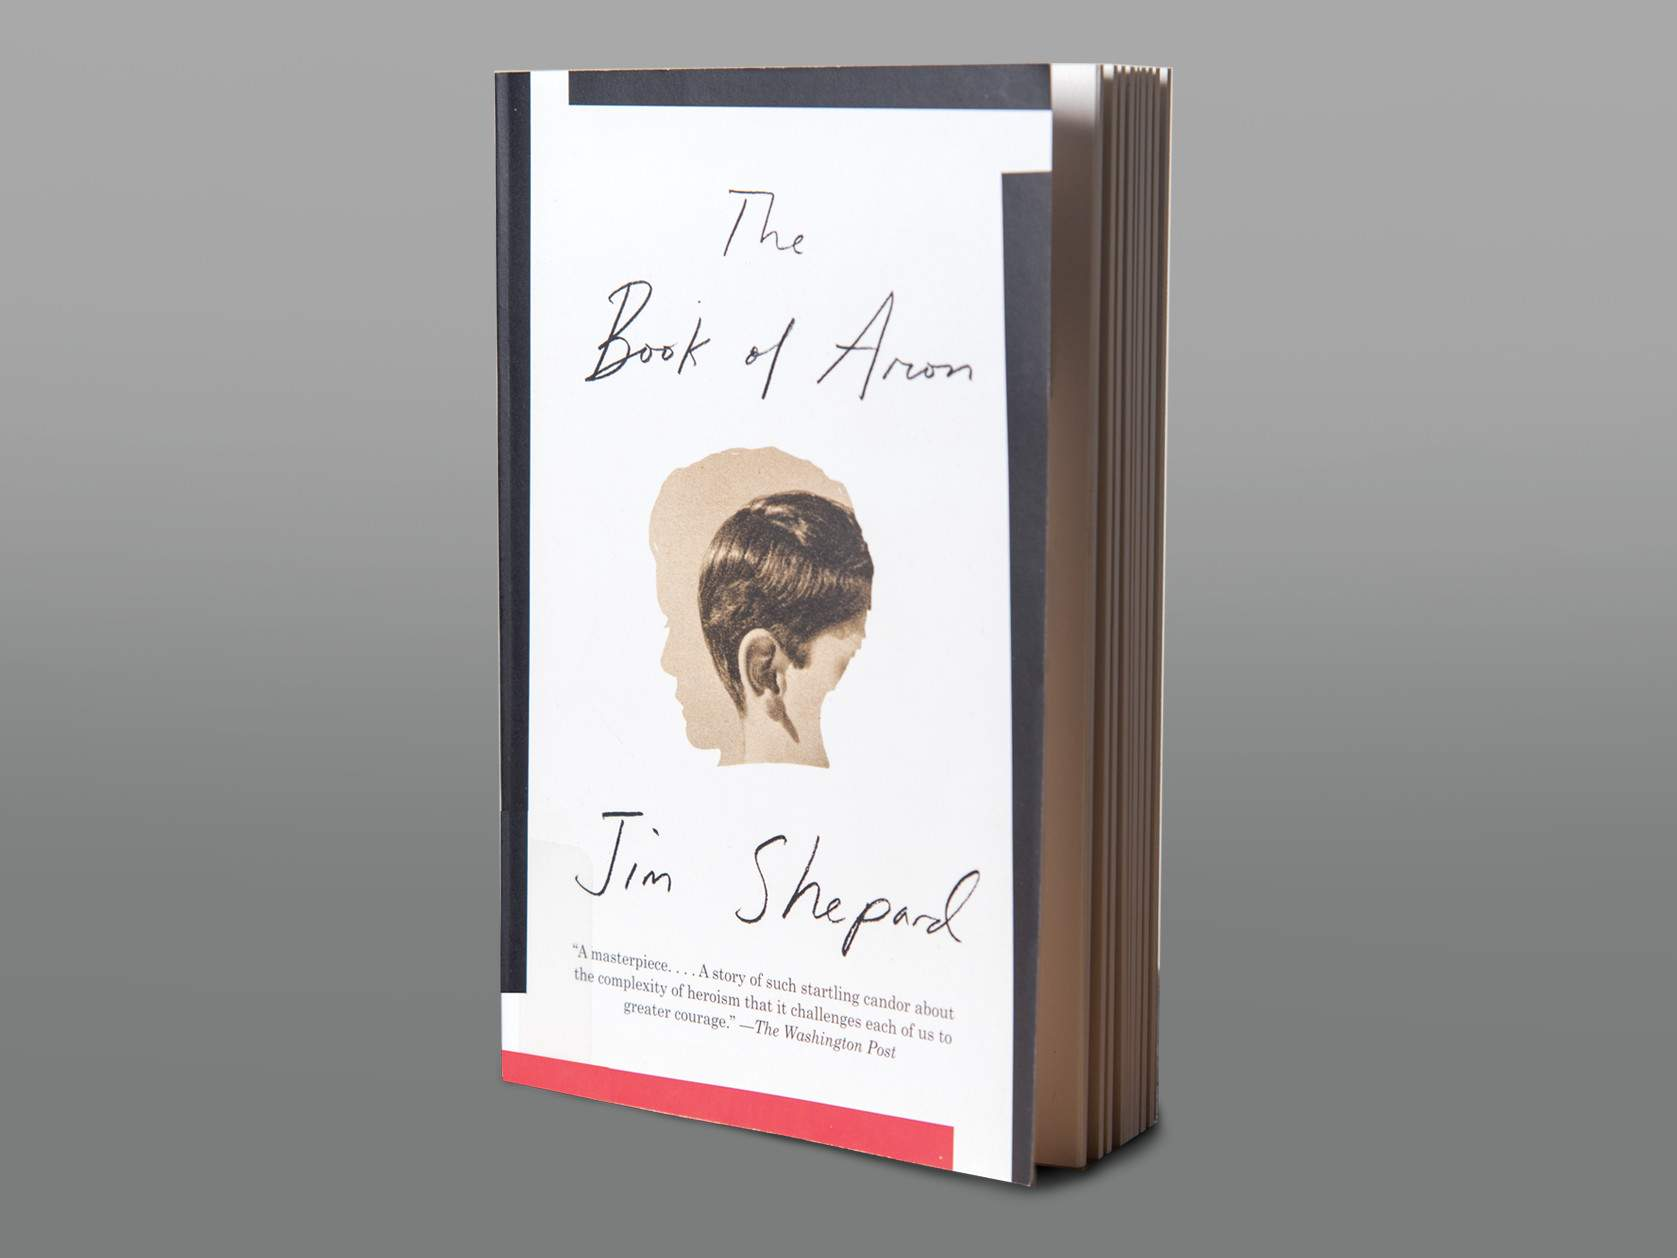 cover of The Book of Aron by Jim Shepard